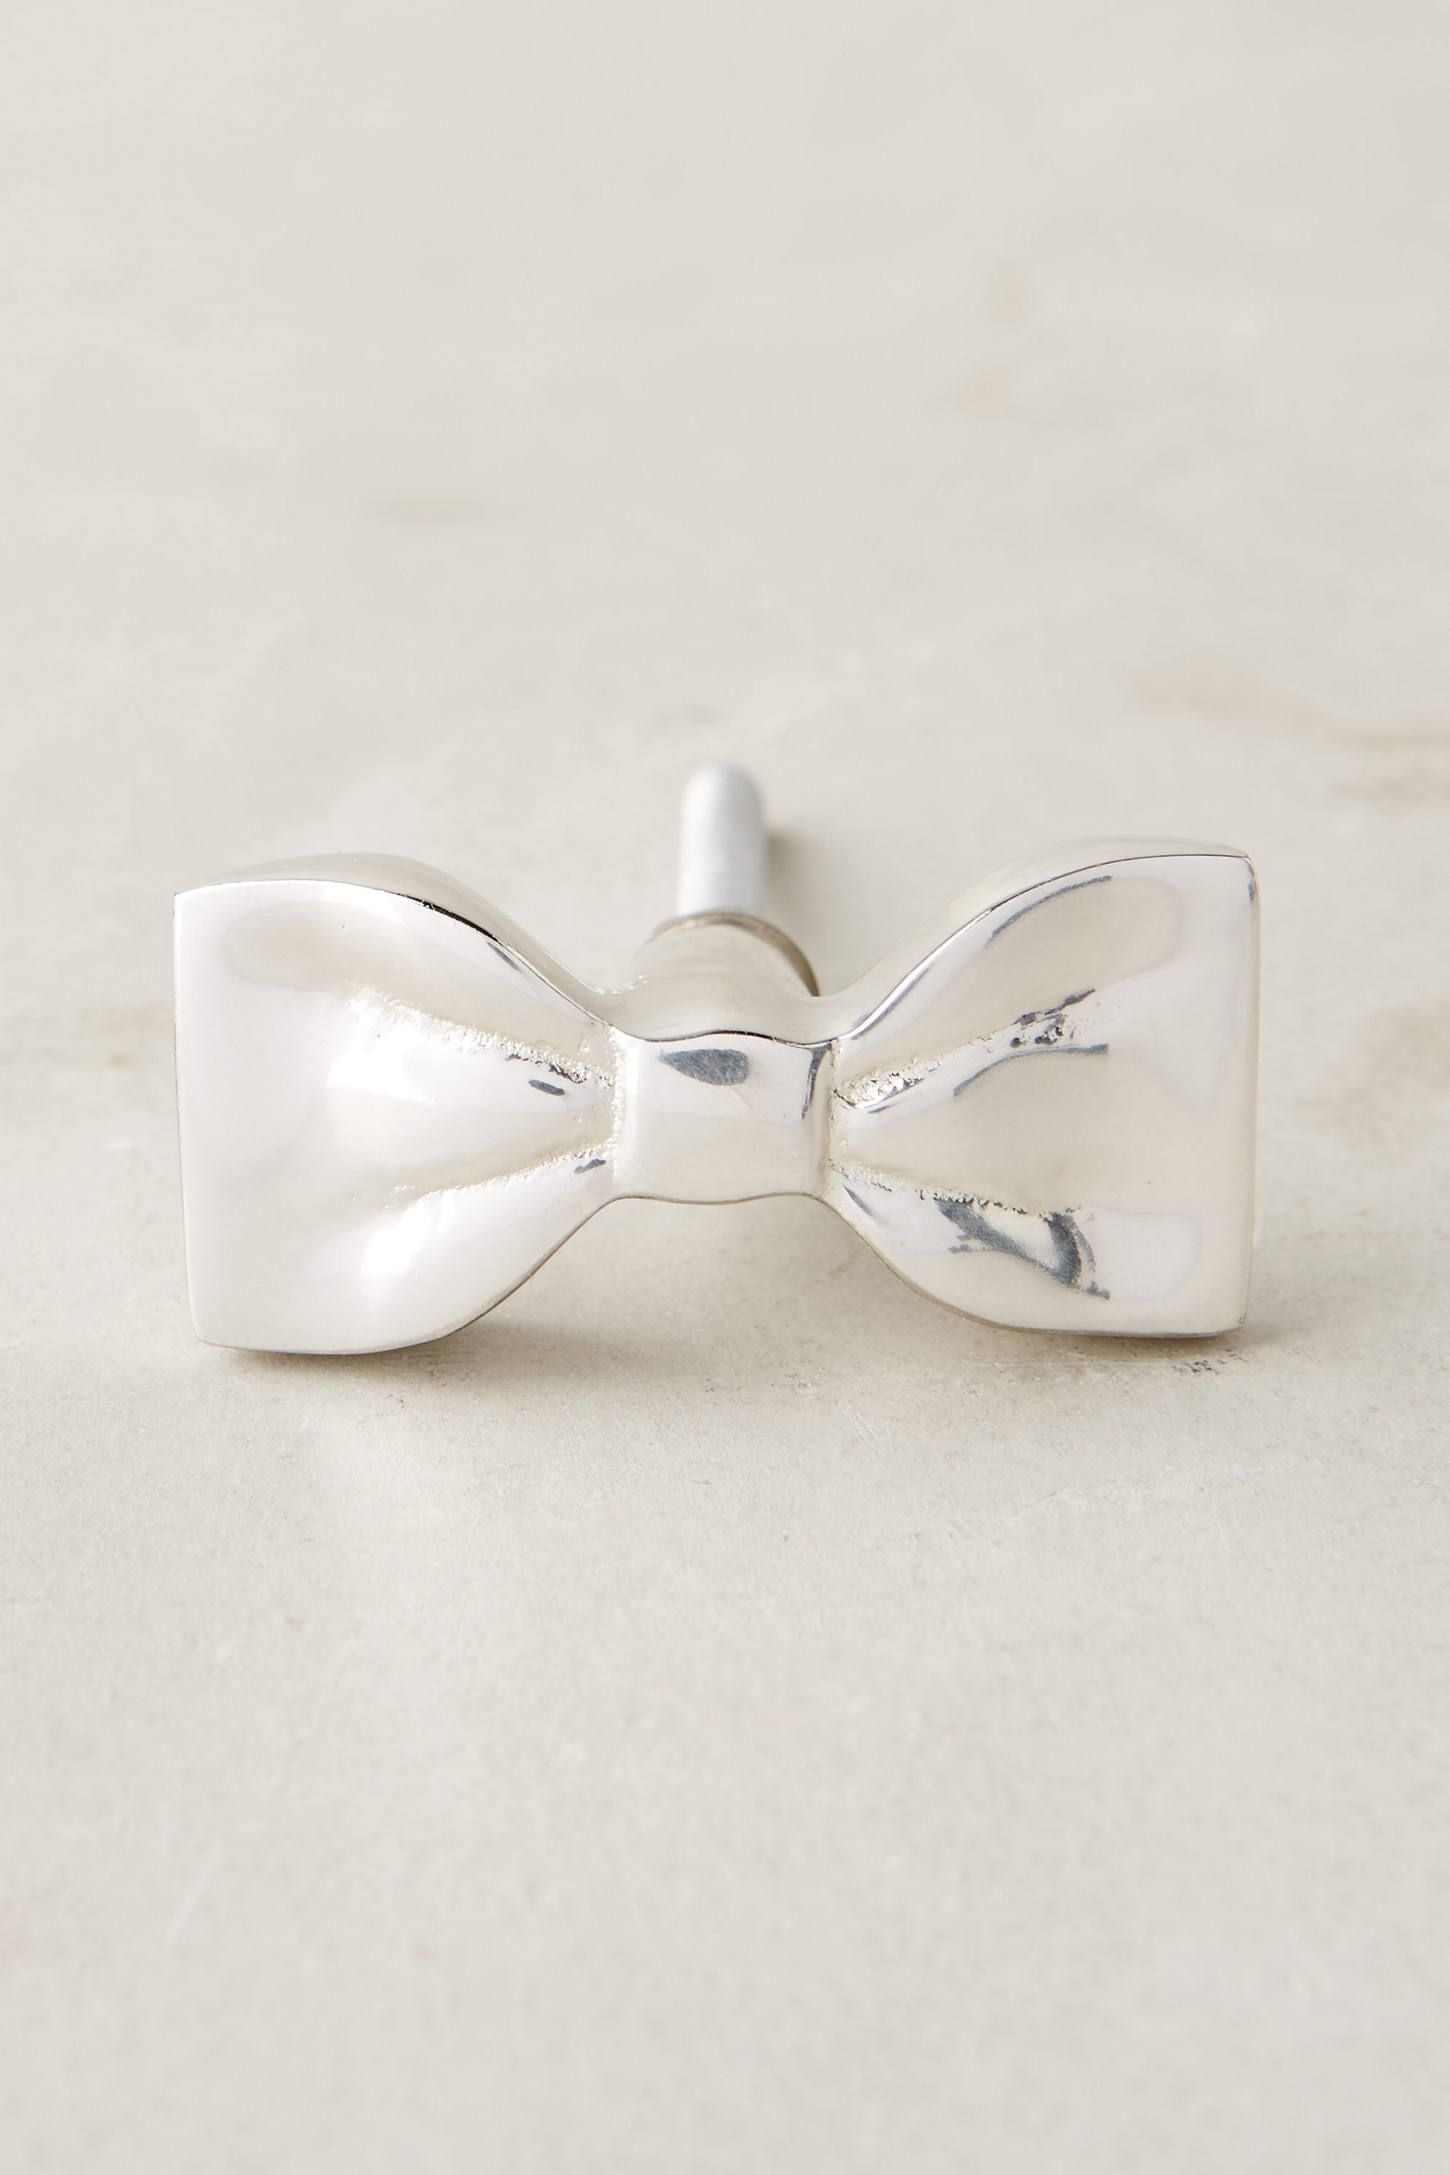 Shop the Bow-Tied Knob and more Anthropologie at Anthropologie today. Read customer reviews, discover product details and more.